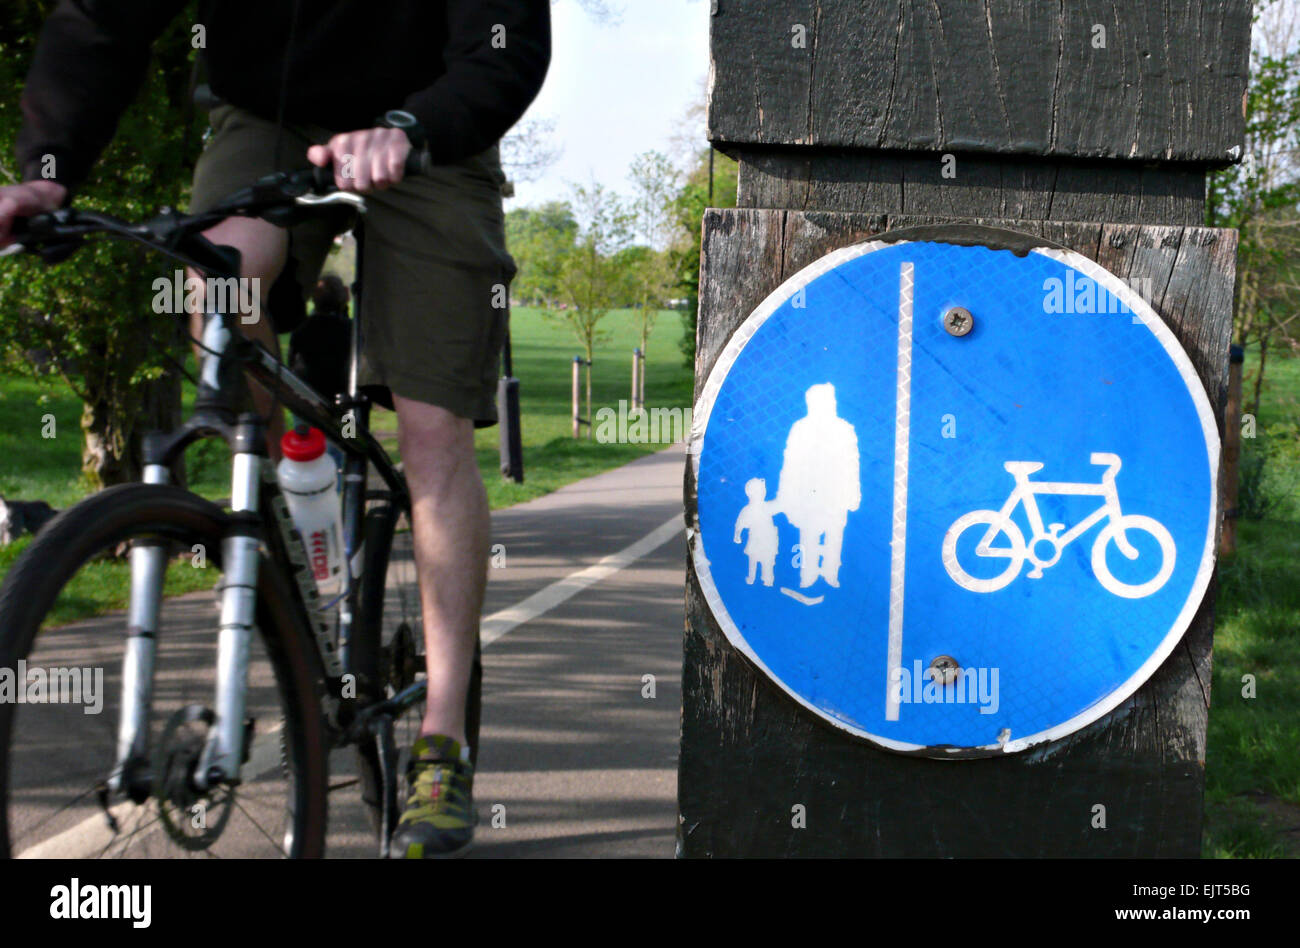 A cyclist rides on the correct side of the path on a London Common - Stock Image